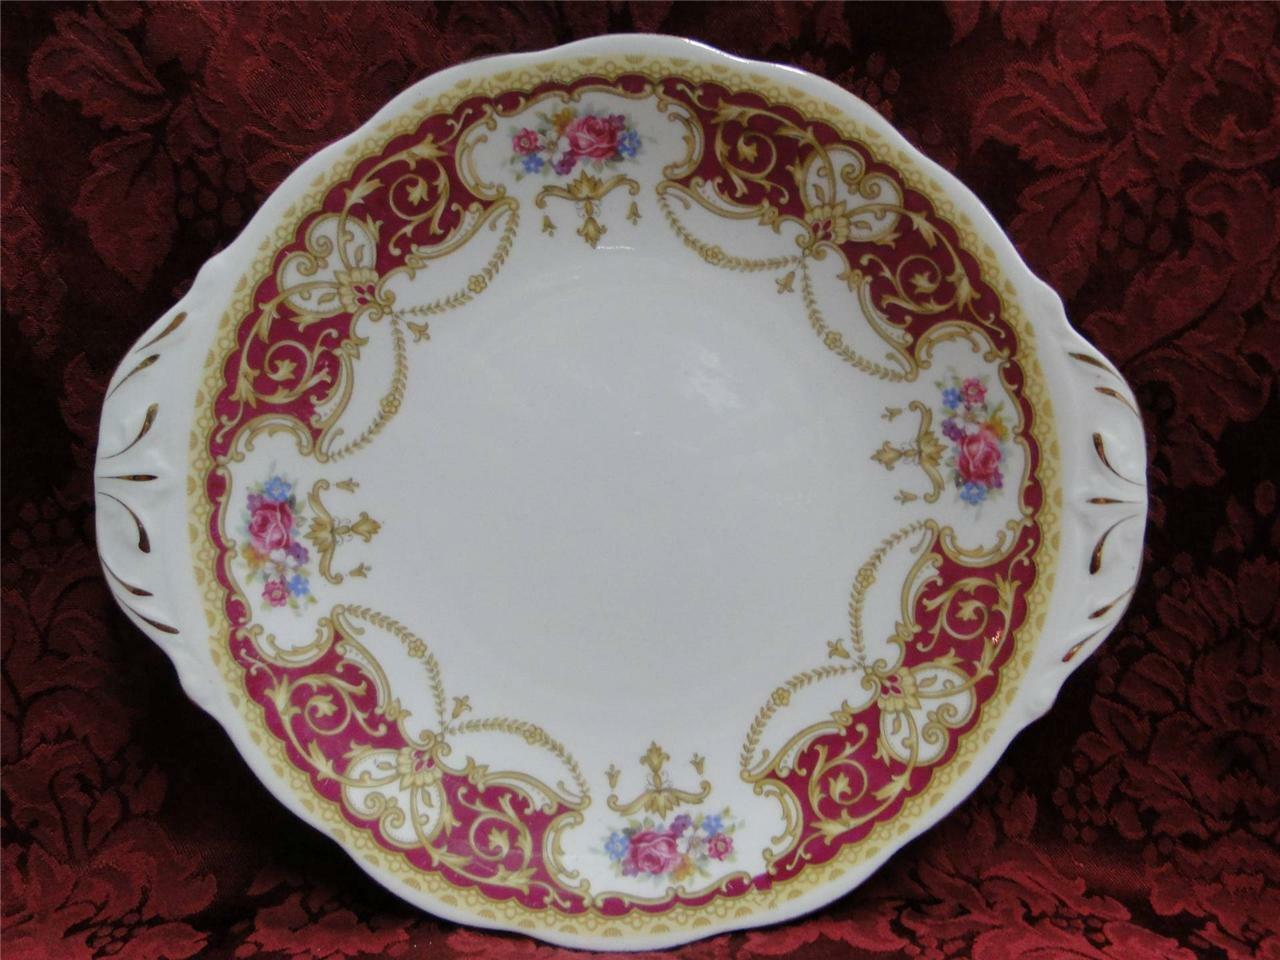 Queen Anne Regency Red, Floral Sprays Red Border: Cake Plate w/ Handles 10 3/8""